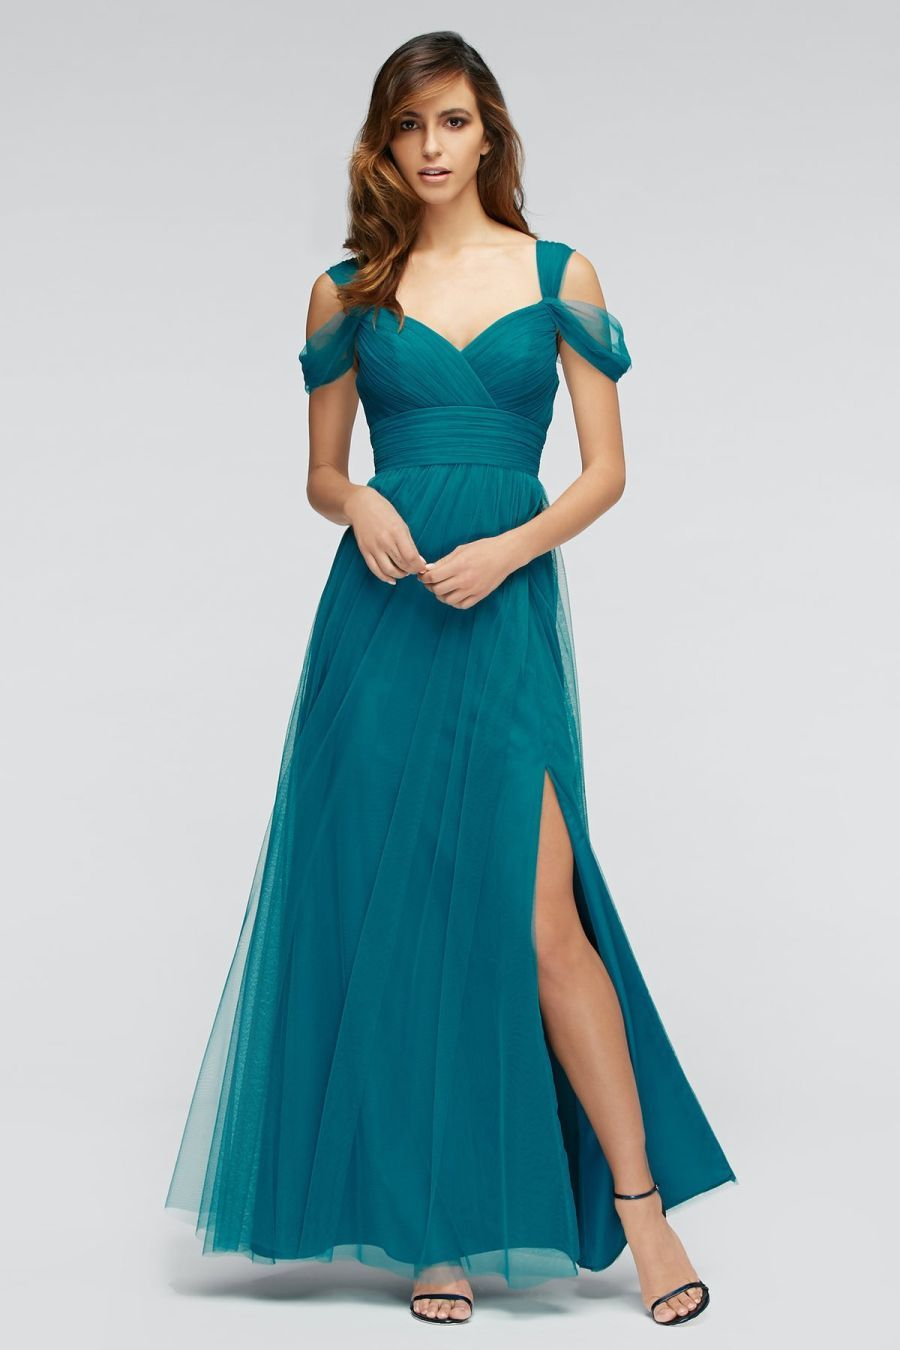 Size 10 Viridian Watters 1309 Gladiola V Neck Bridesmaid Gown ...